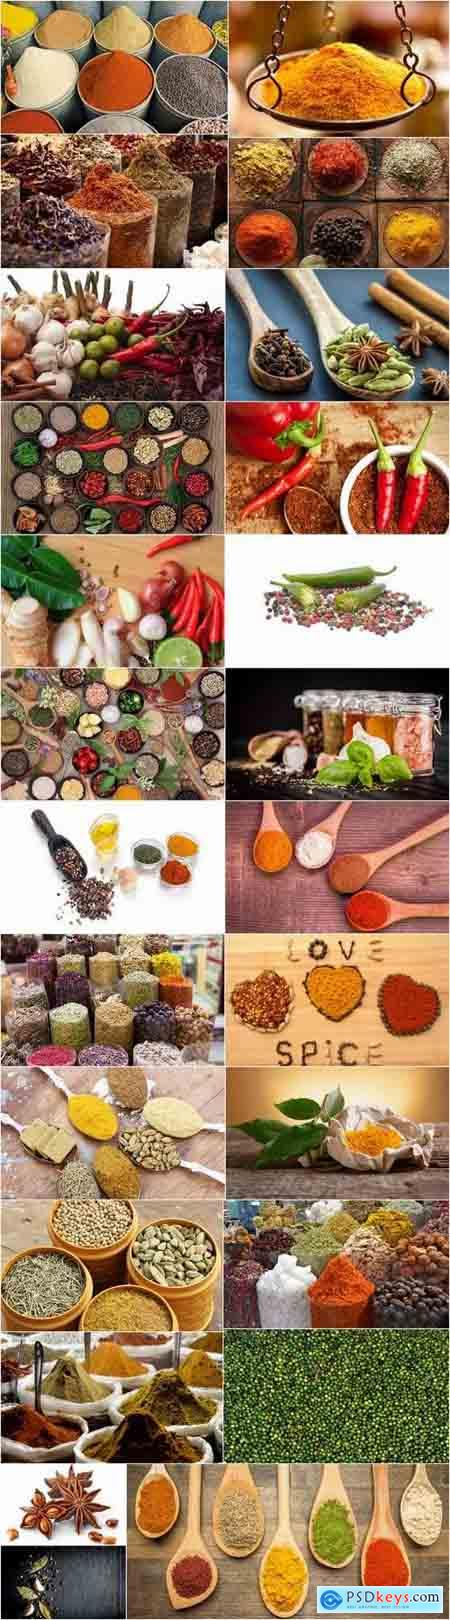 Spices garlic pepper seasoning sharpness 25 HQ Jpeg